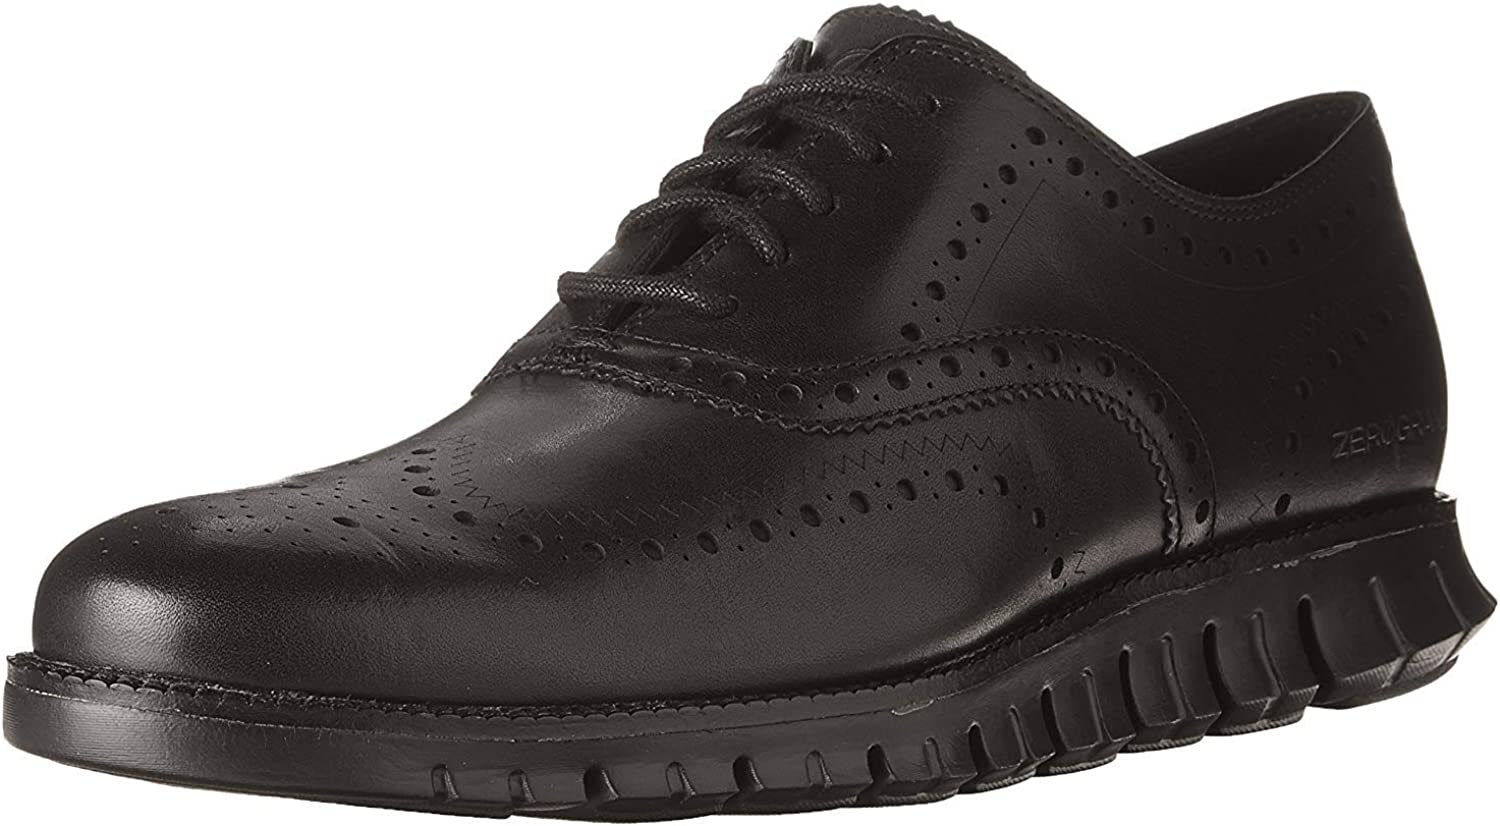 Zerogrand Wing OX Oxford Leather Shoes